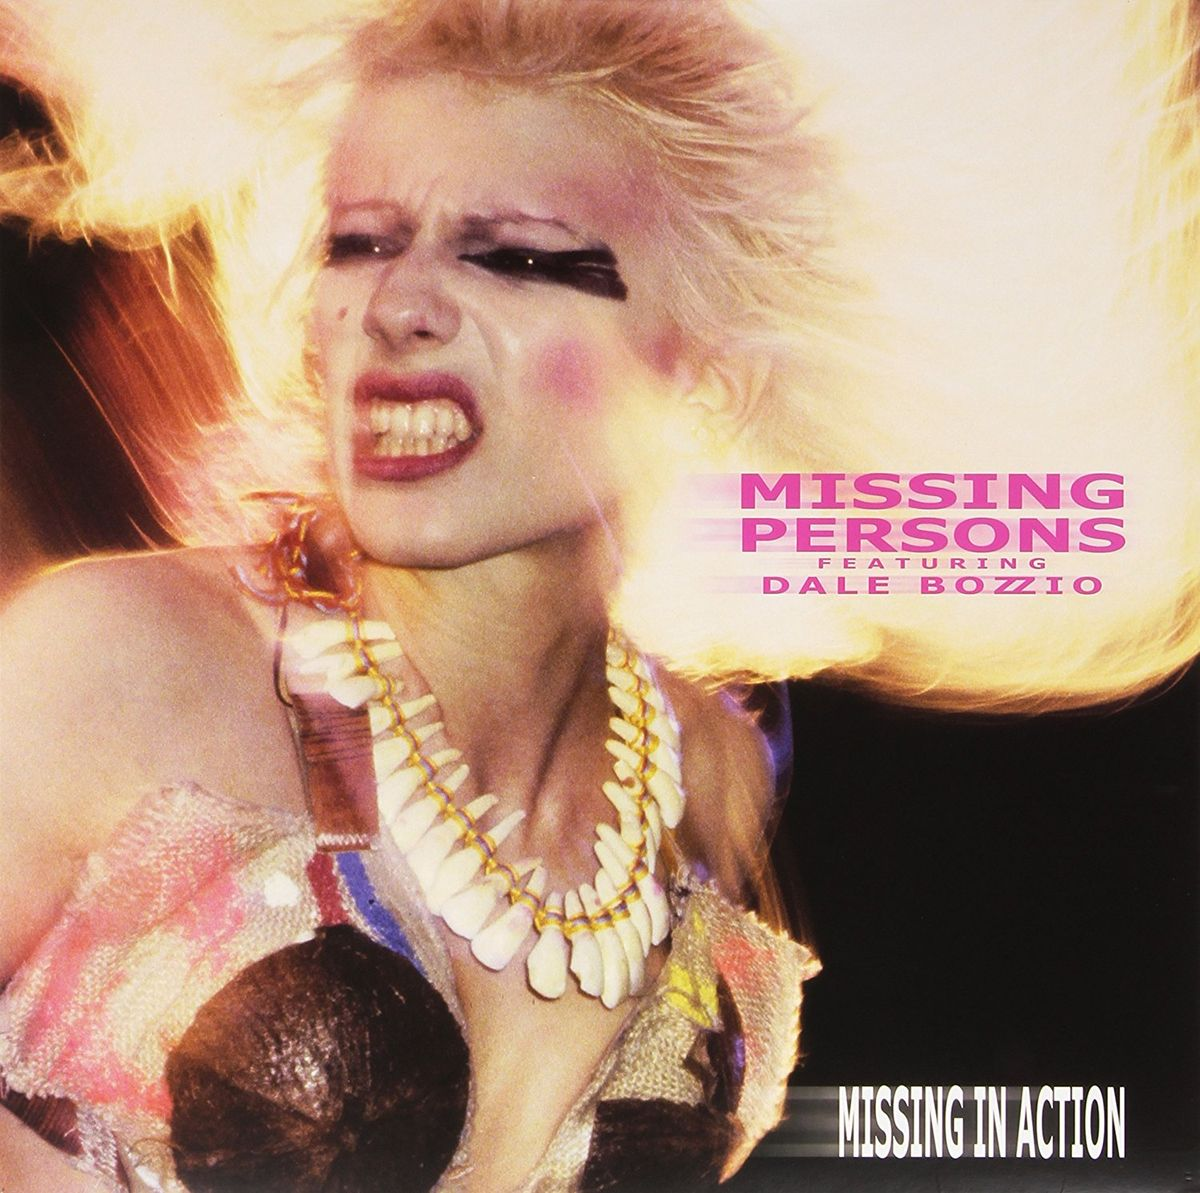 Missing-Persons-Dale-Bozzio-Missing-In-Action-LP-152069018